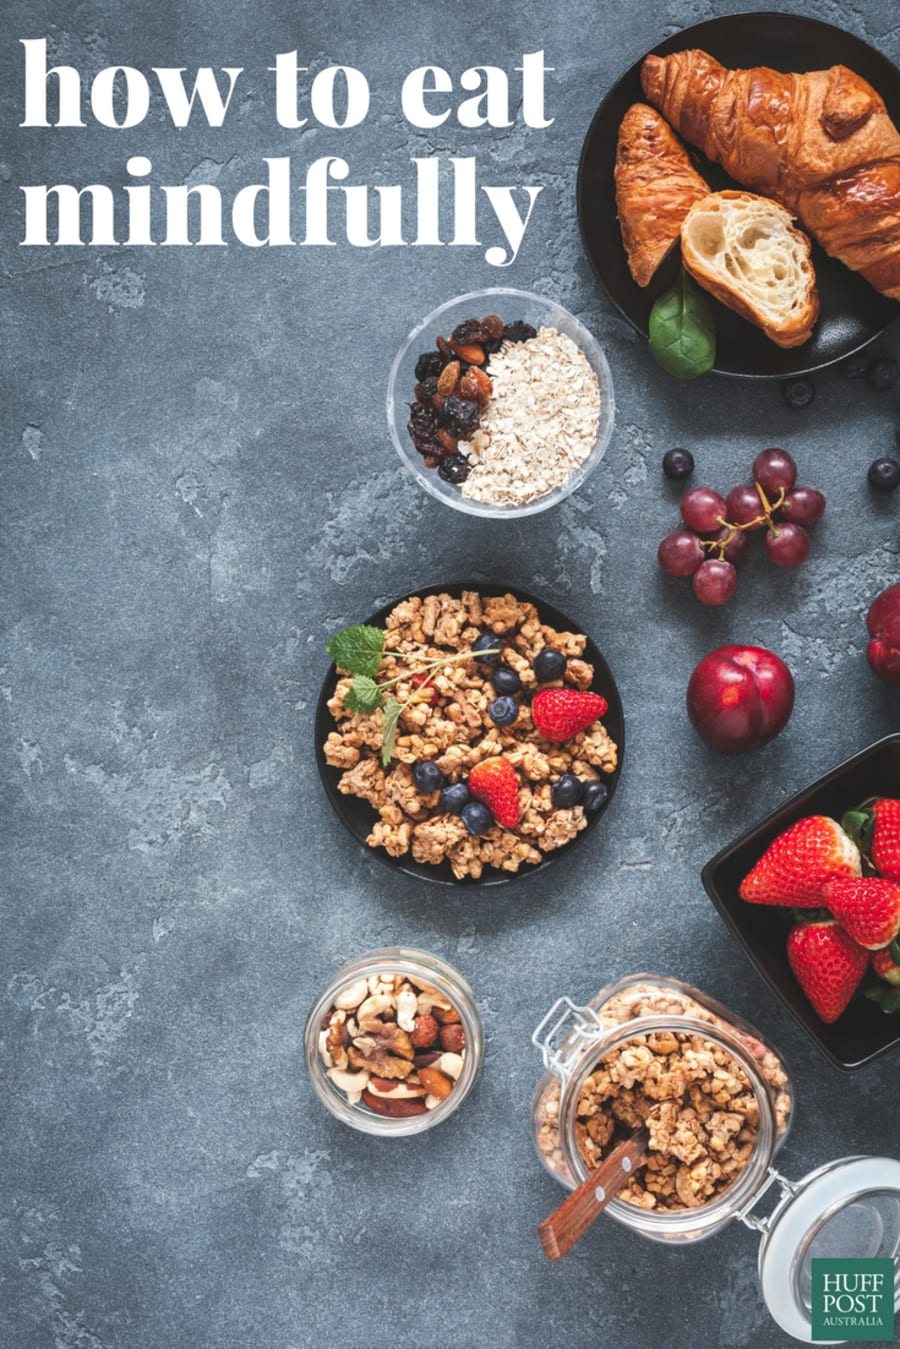 How Eating Mindfully Can Help With Weight